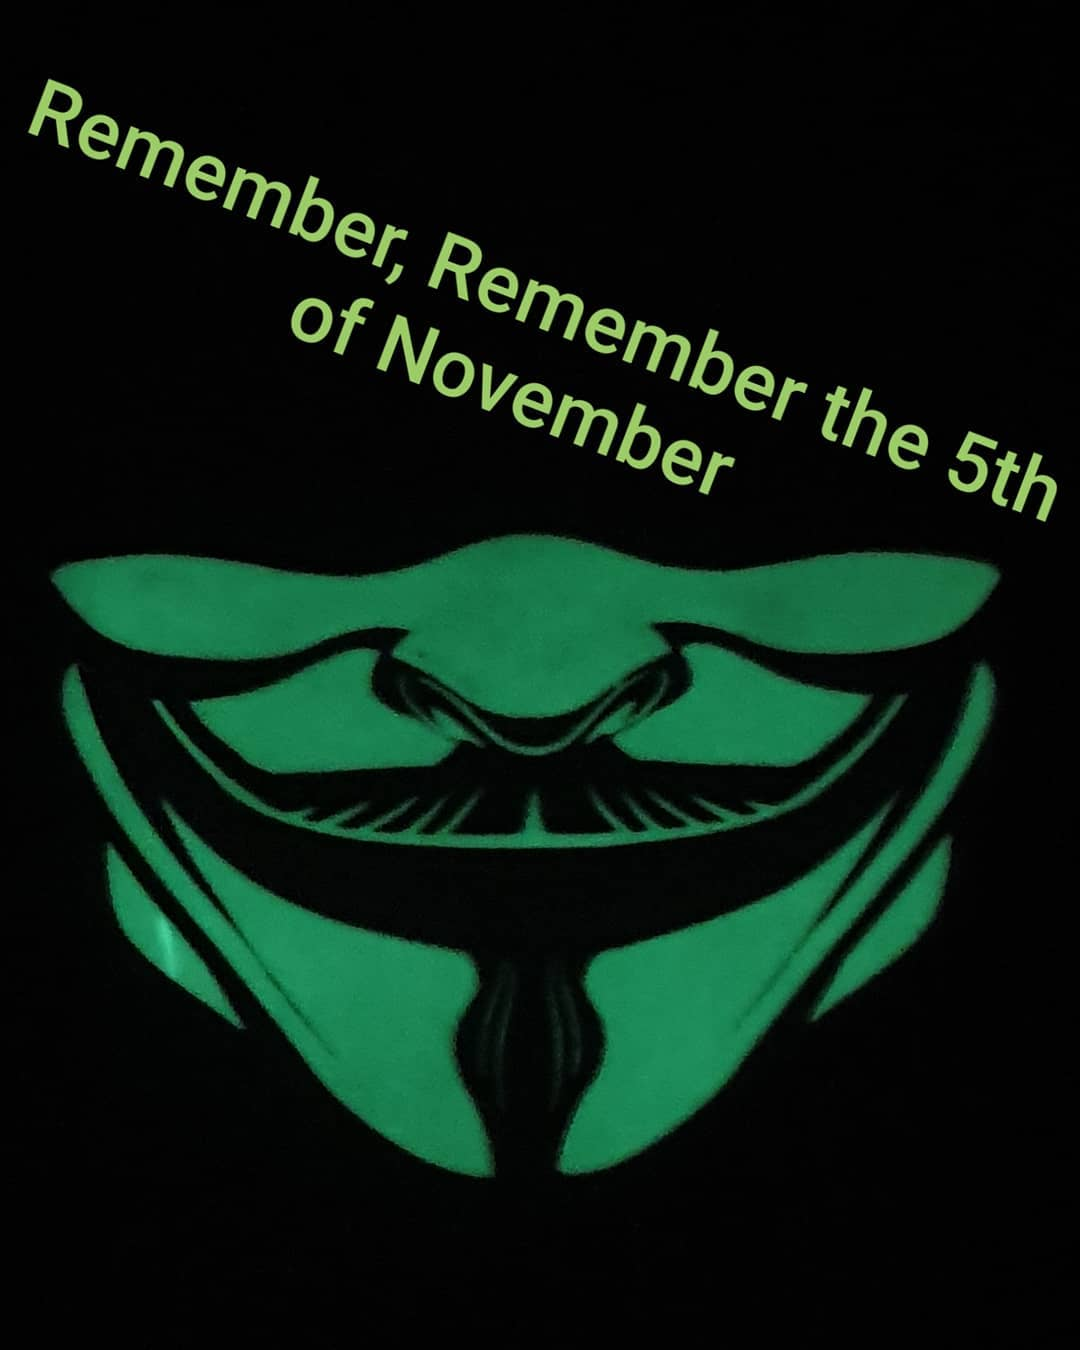 تایمش گذشته اما ... Remember, Remember, the 5th of november #scarf #v_for_vendetta #v #anonymouse #hack #hacker #revolution